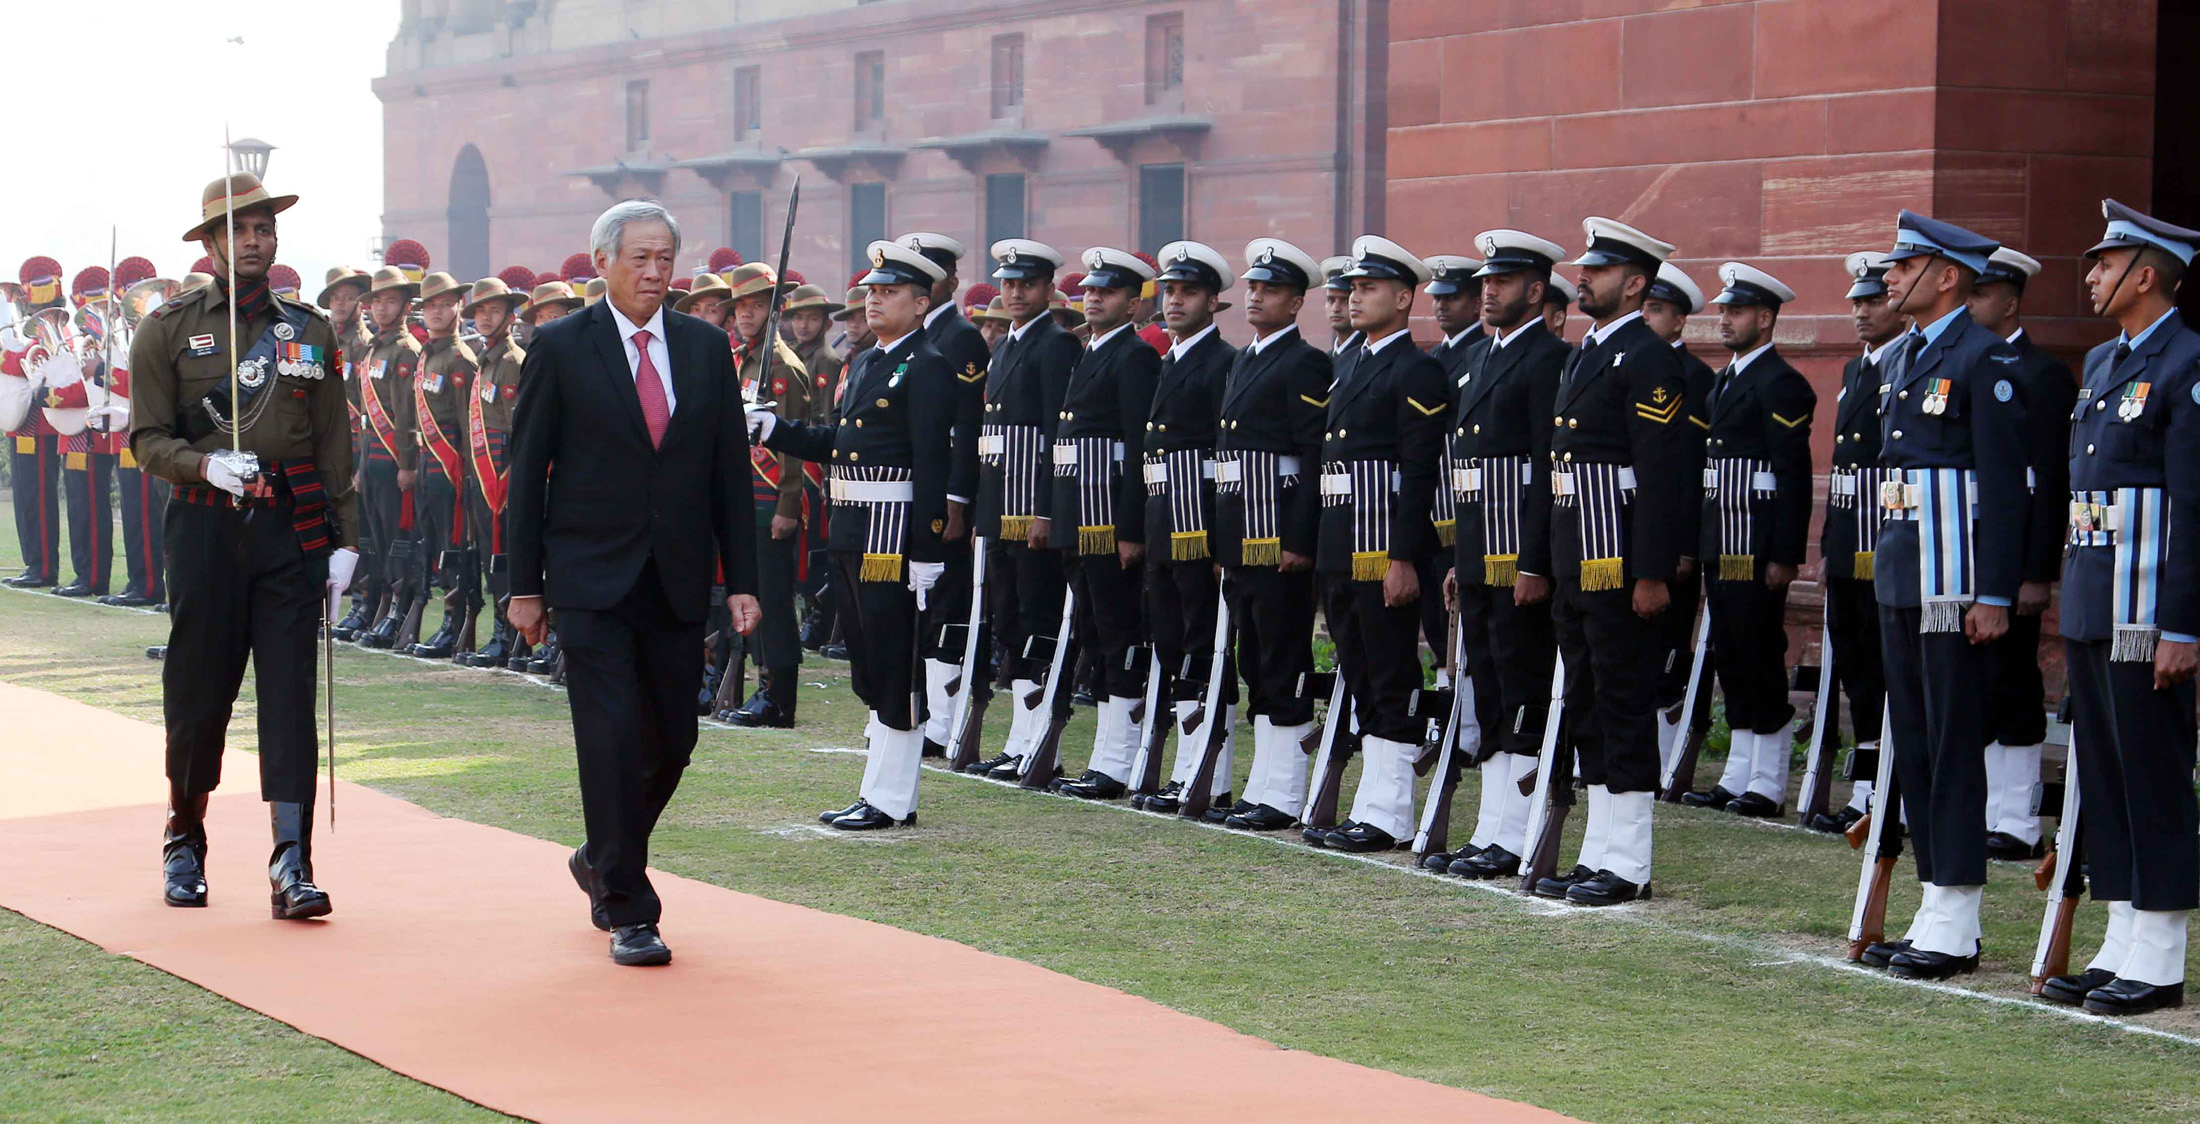 The Defence Minister of Singapore, Dr. Ng Eng Hen inspecting the Tri-Services Guard of Honour, in New Delhi on November 28, 2017. (Photo courtsey: Press Information Bureau)